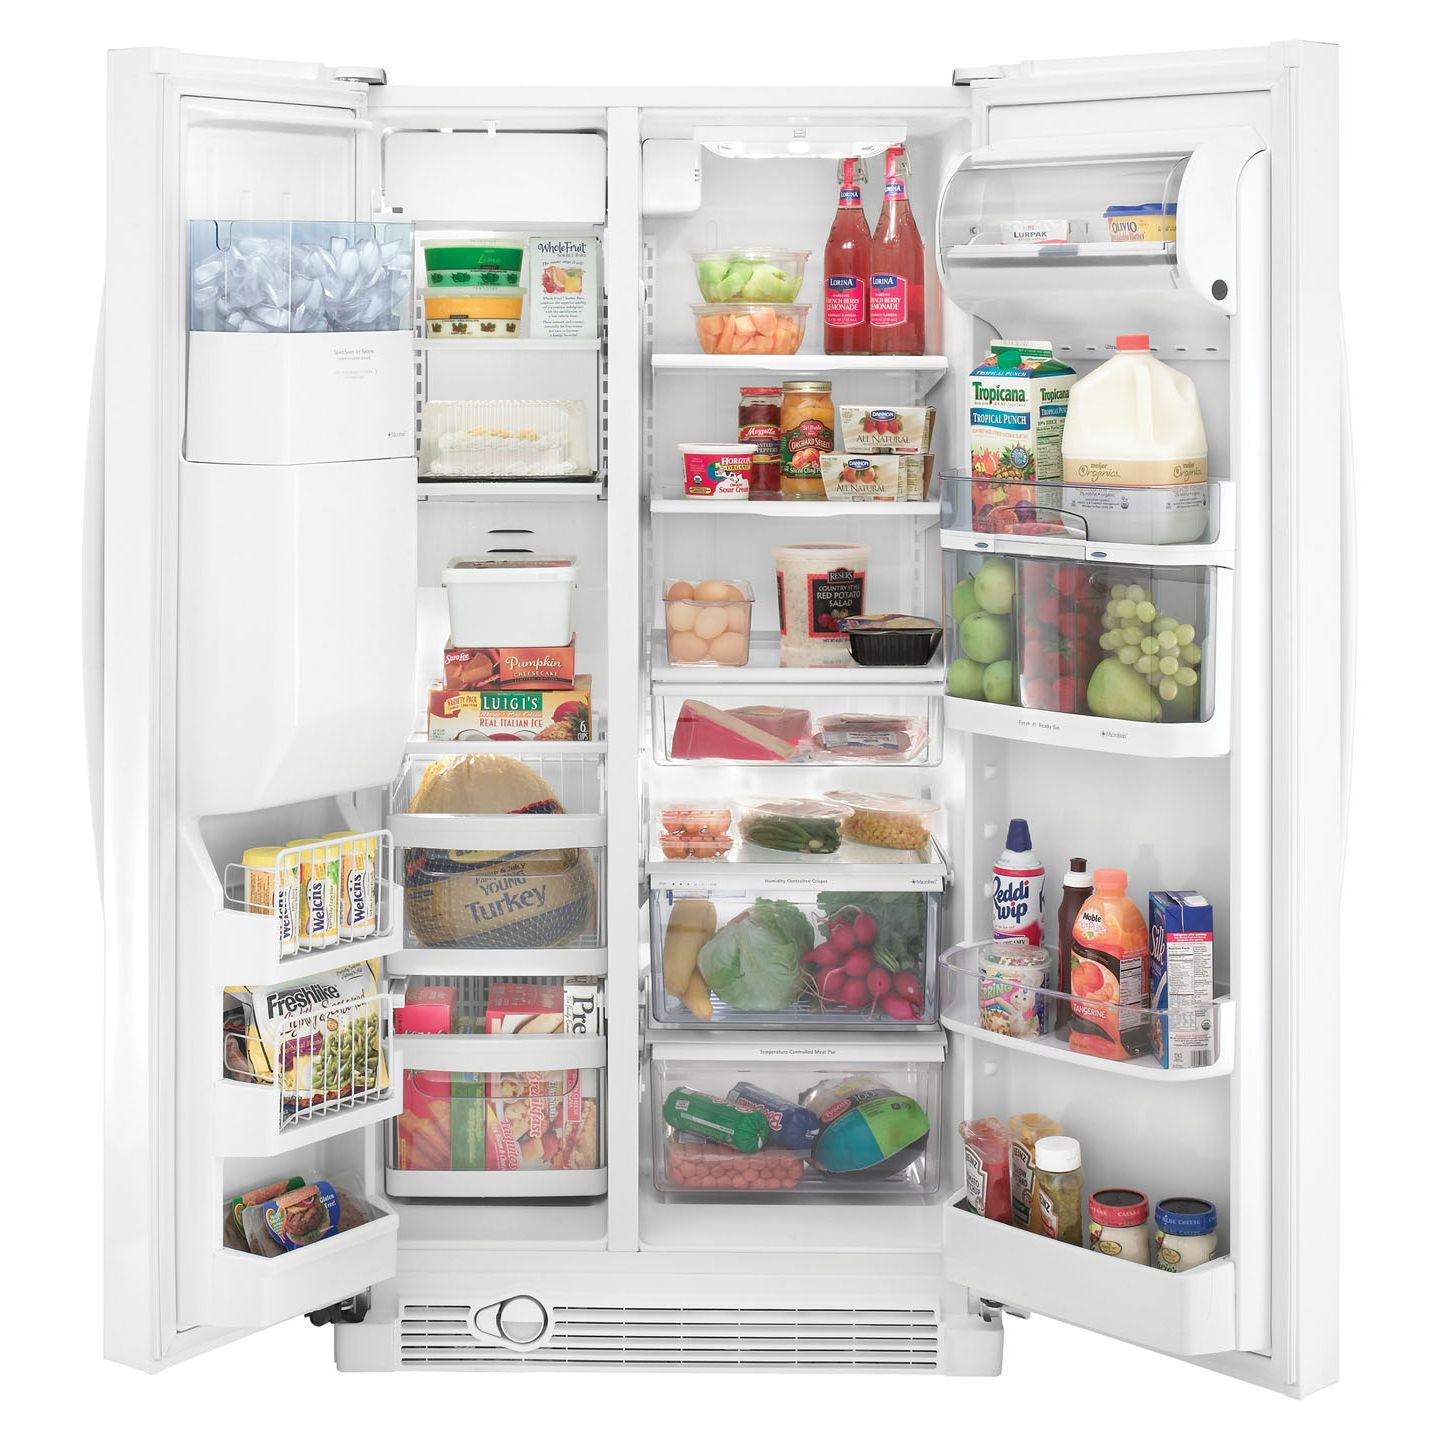 Kenmore Elite 25.6 cu. ft. Side-By-Side Refrigerator w/ Shaved Ice (5478)